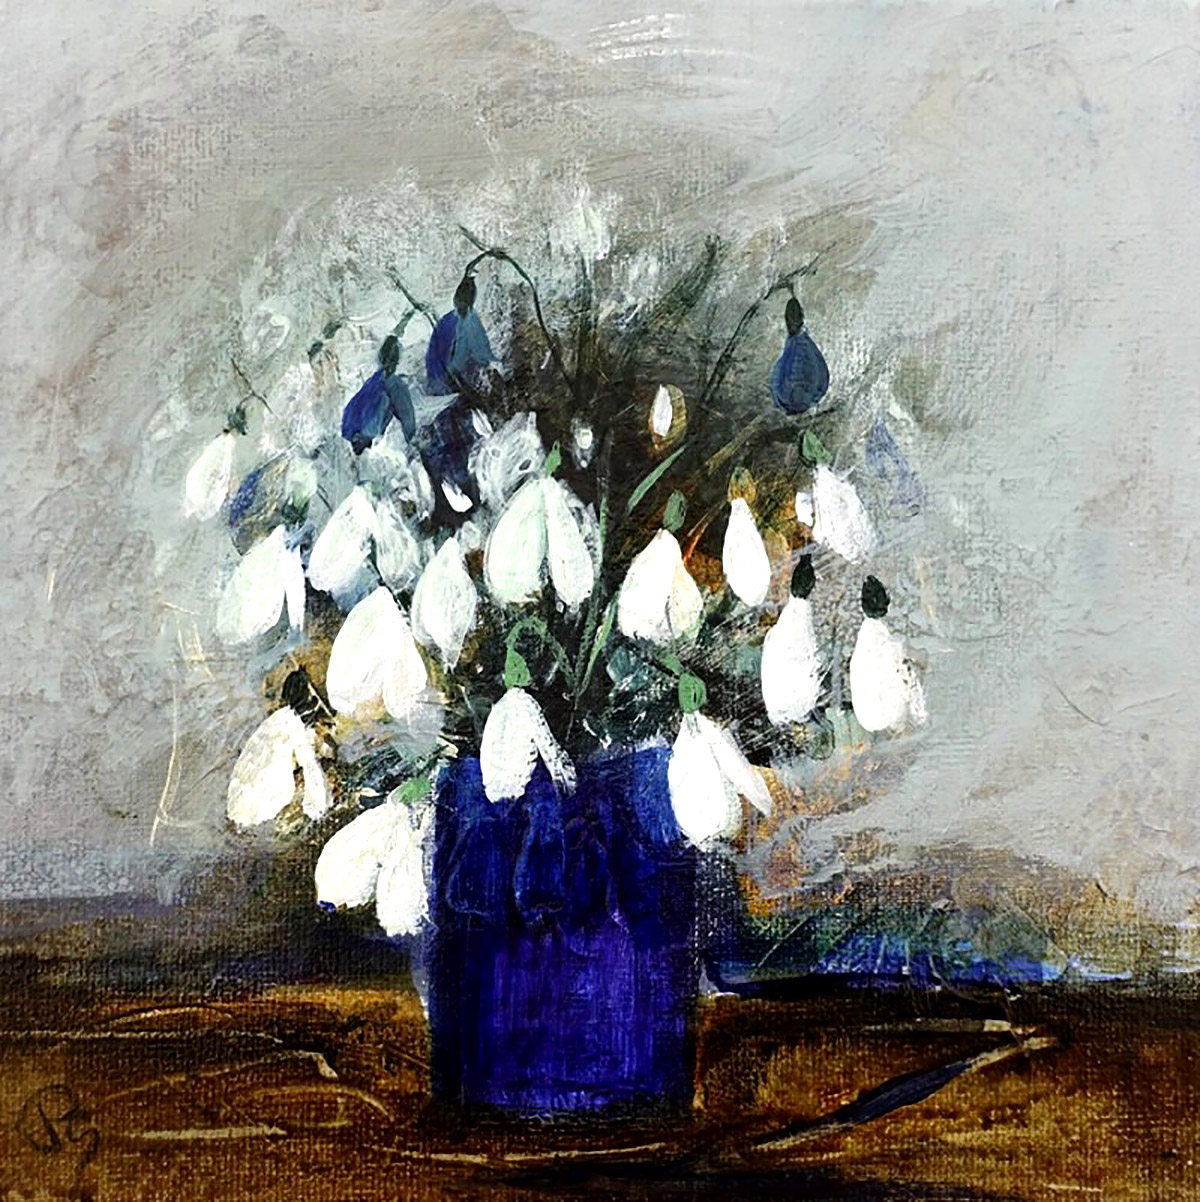 Patricia Sadler, 'Snowdrops In A Blue Vase', acrylic on canvas